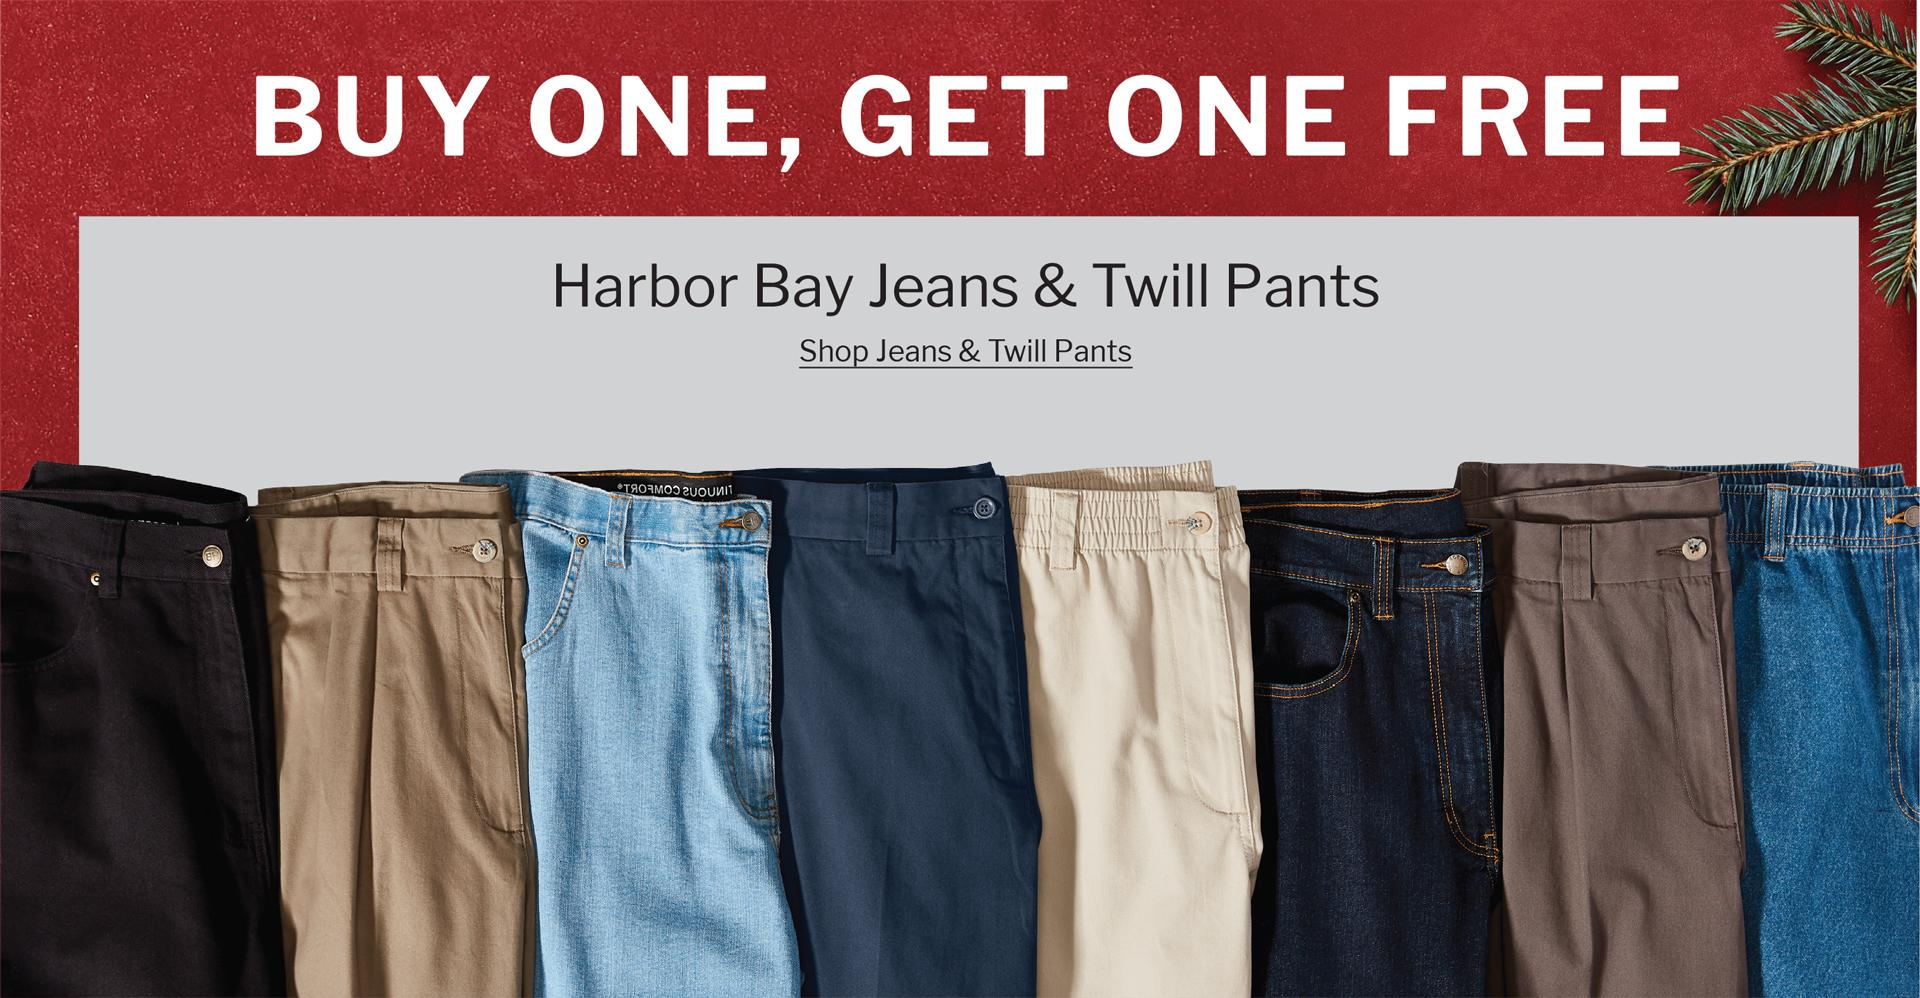 BUY ONE, GET ONE FREE | HARBOR BAY JEANS & TWILL PANTS